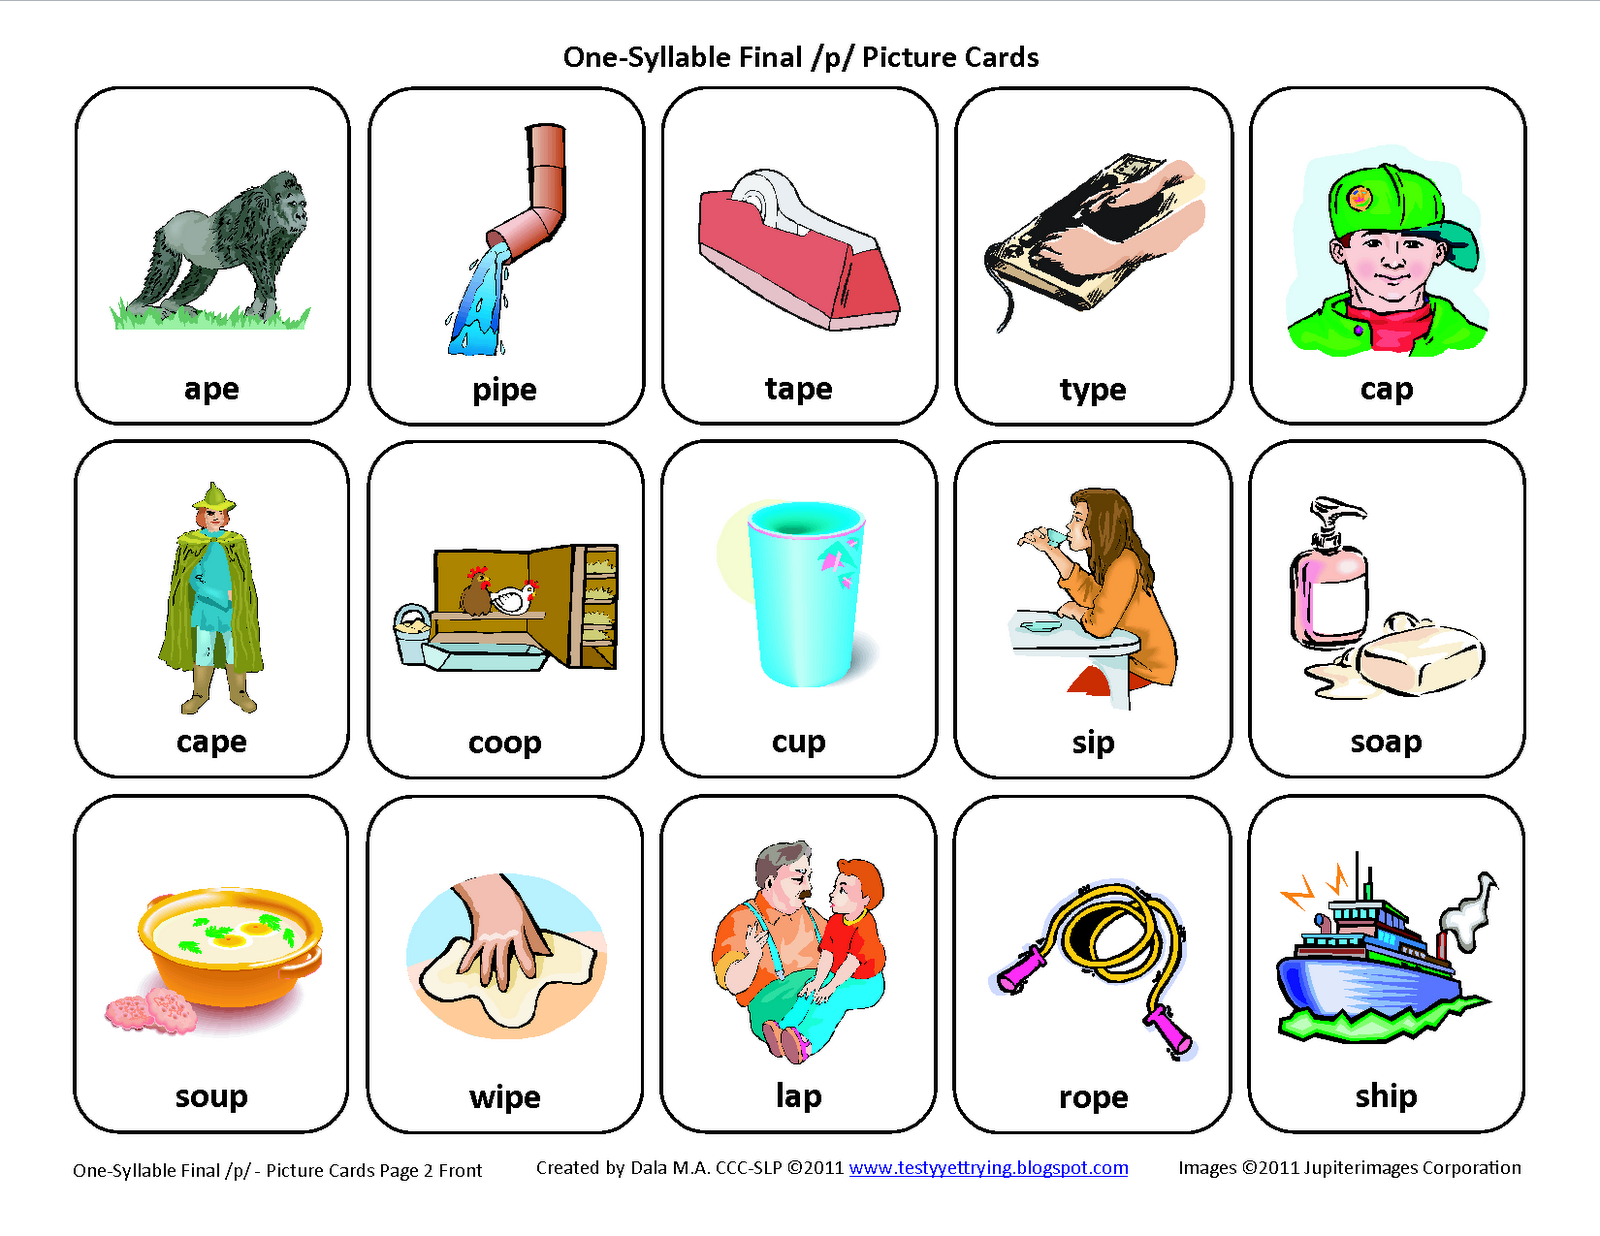 Final P Articulation Card Download This Articulation Card Here Testyyettrying Bl